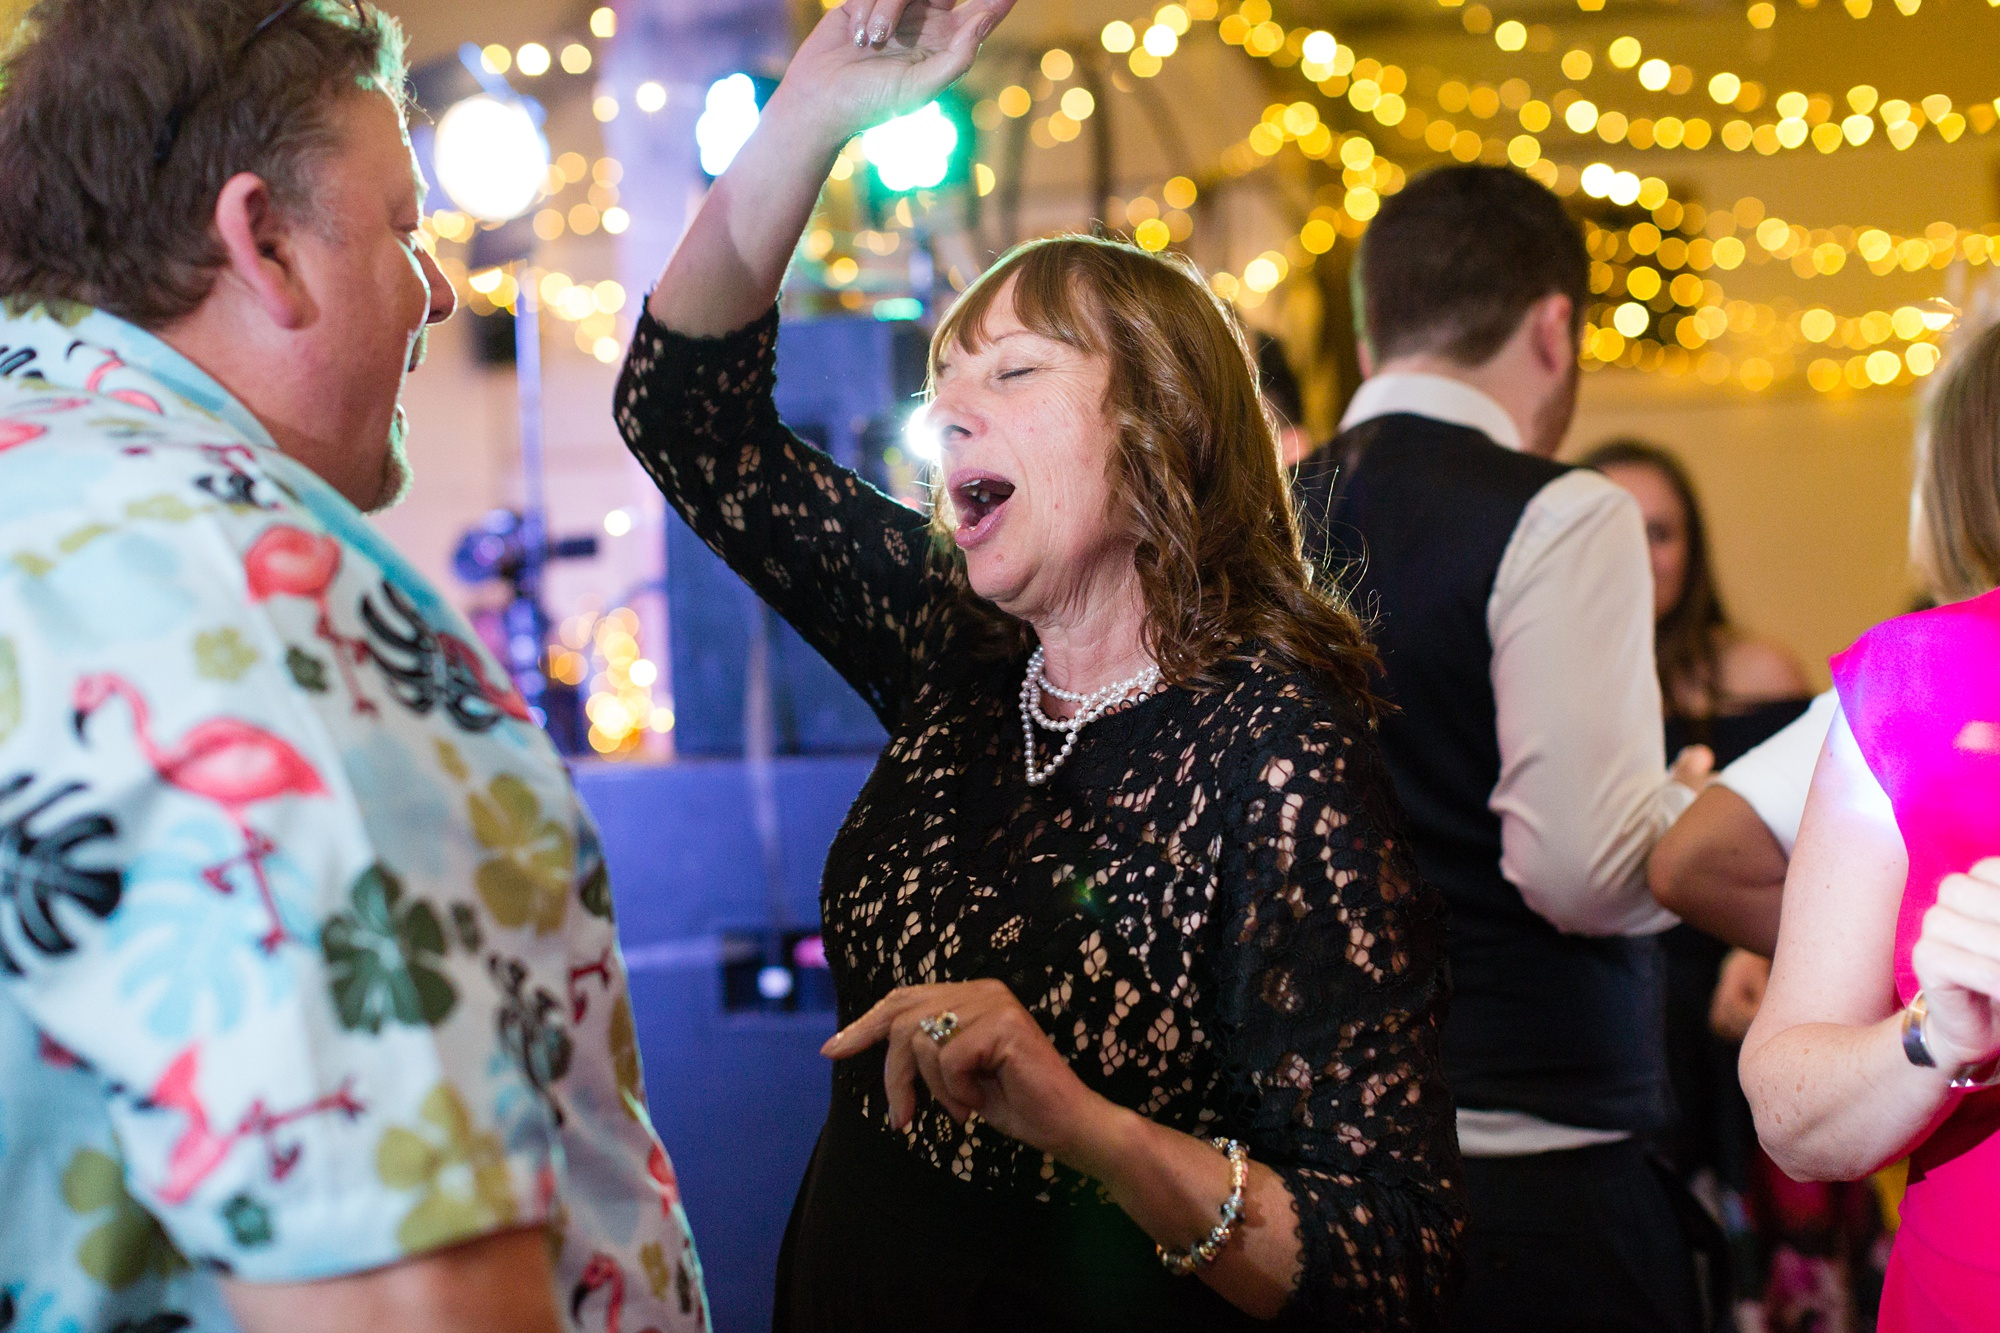 Yorkshire Wedding Photographers guests dancing at party